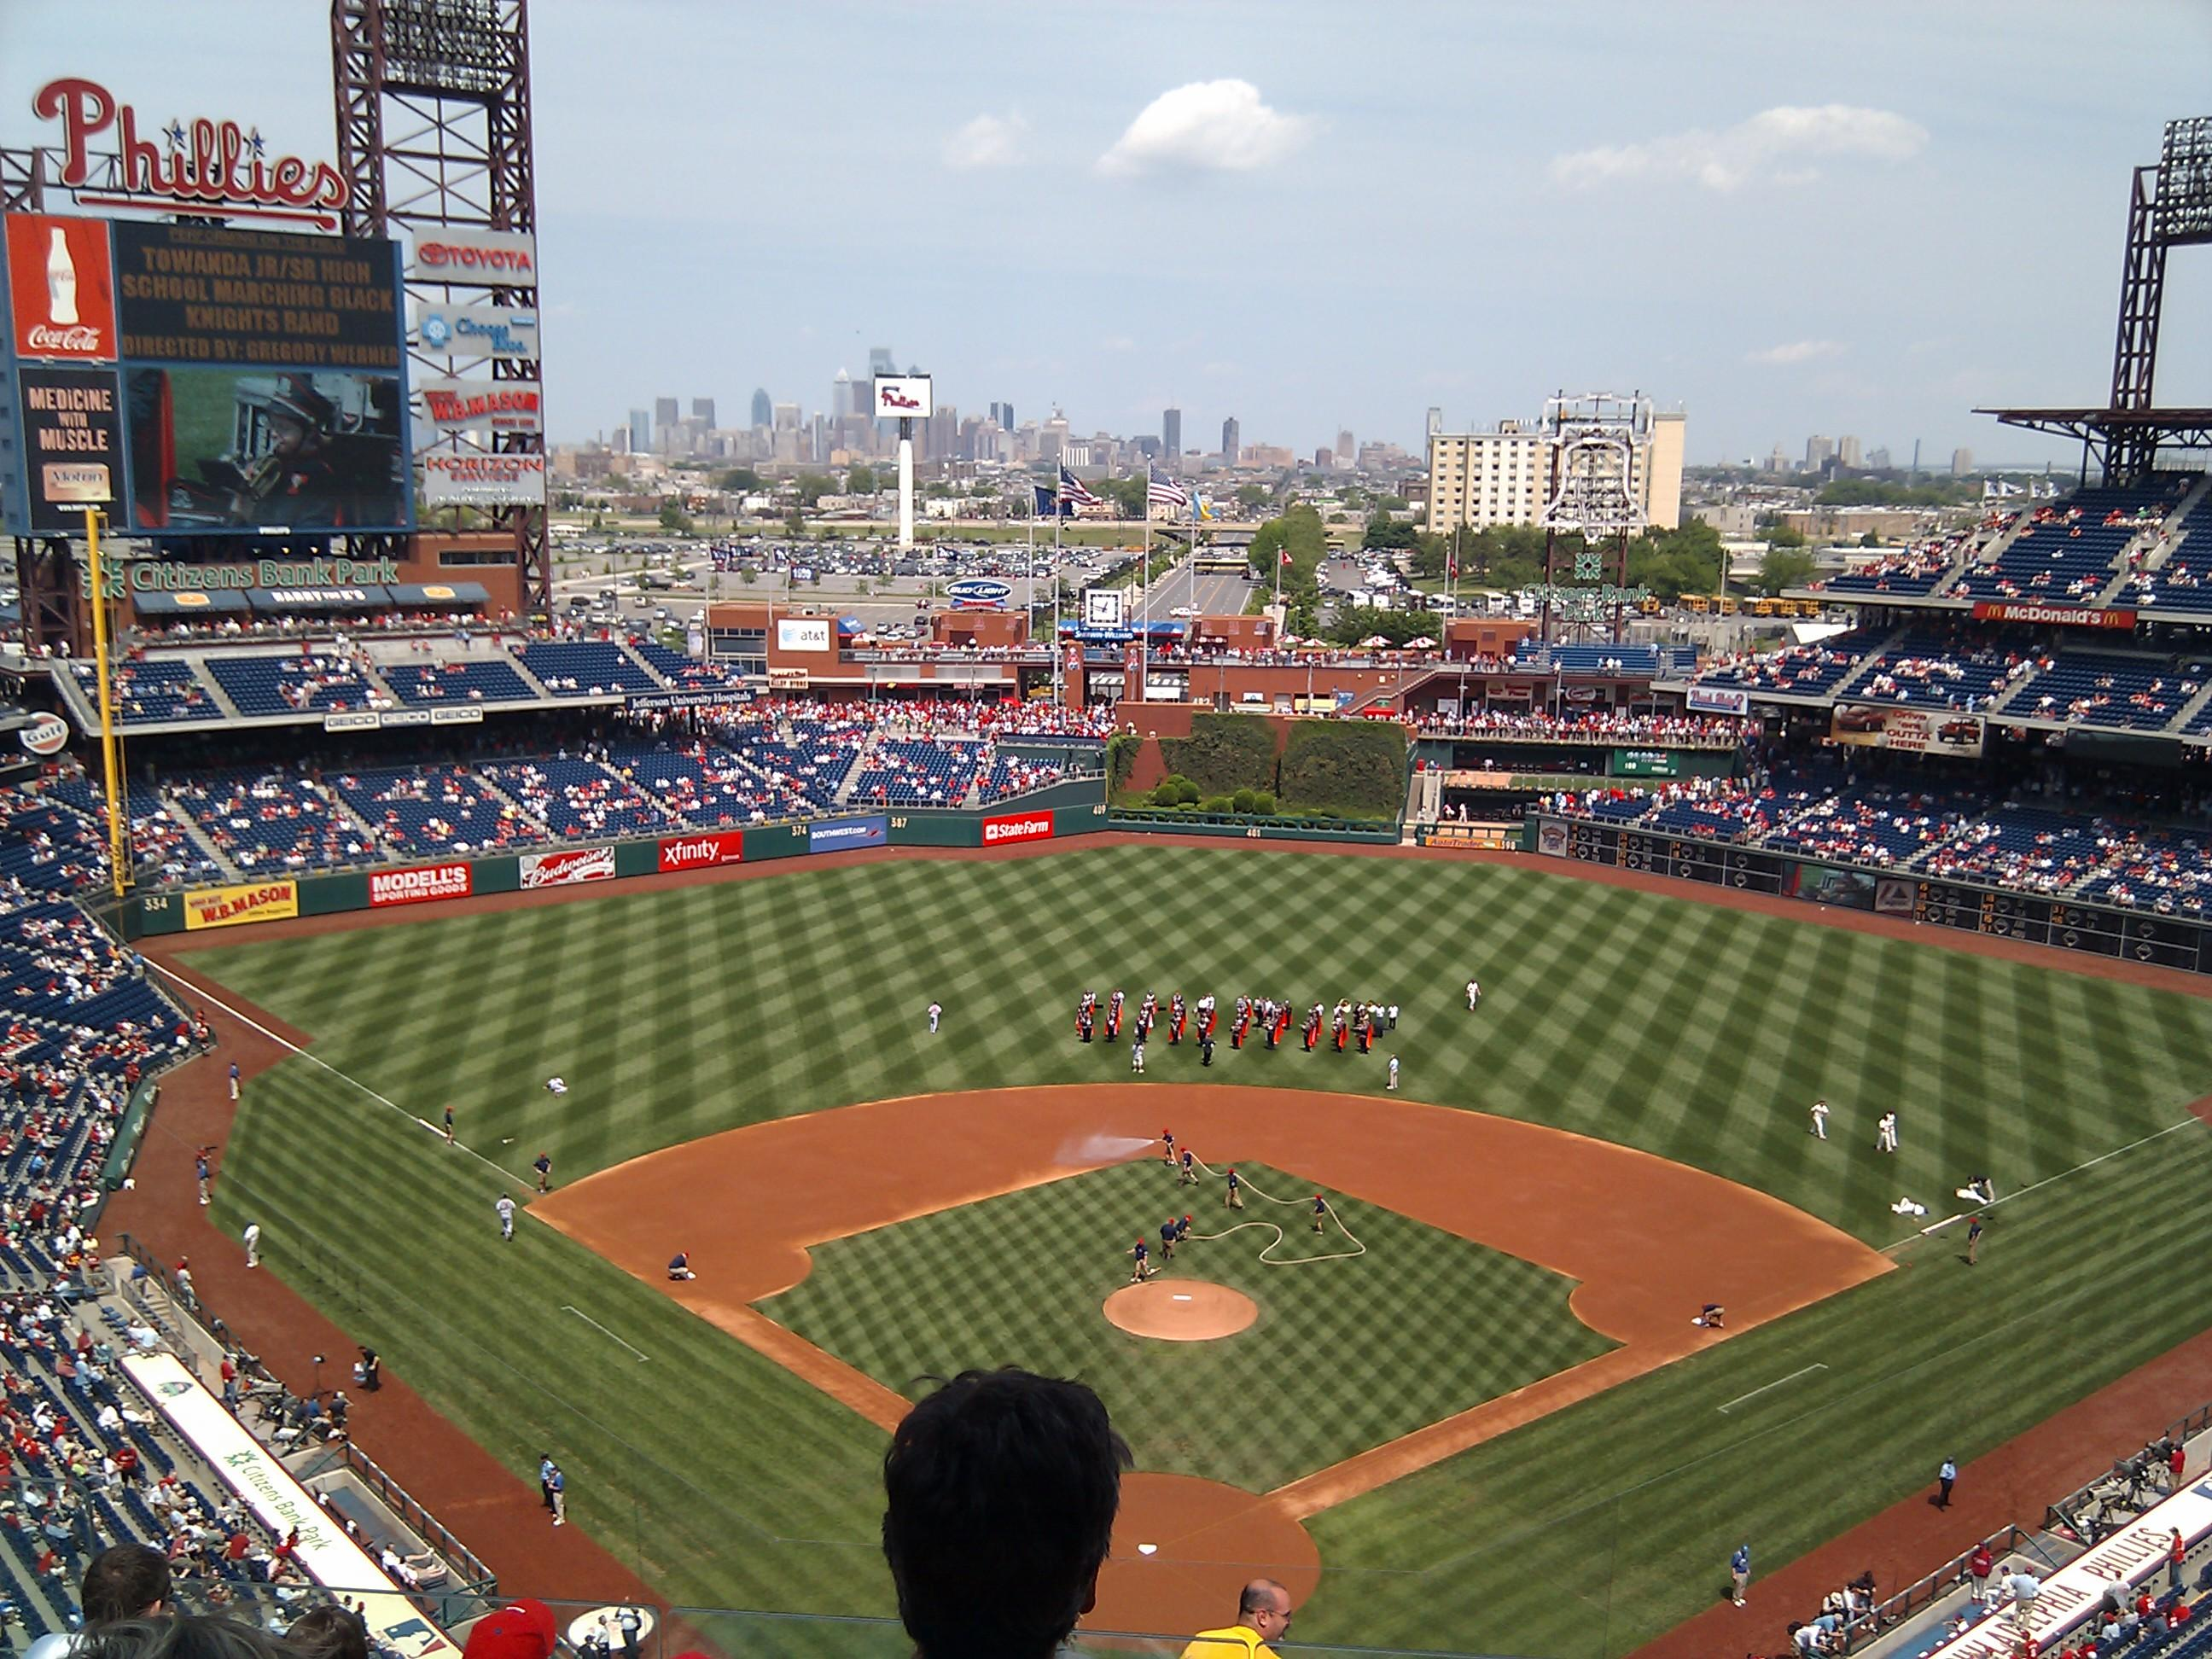 Citizens Bank Park Section 420 Row 6 Seat 16